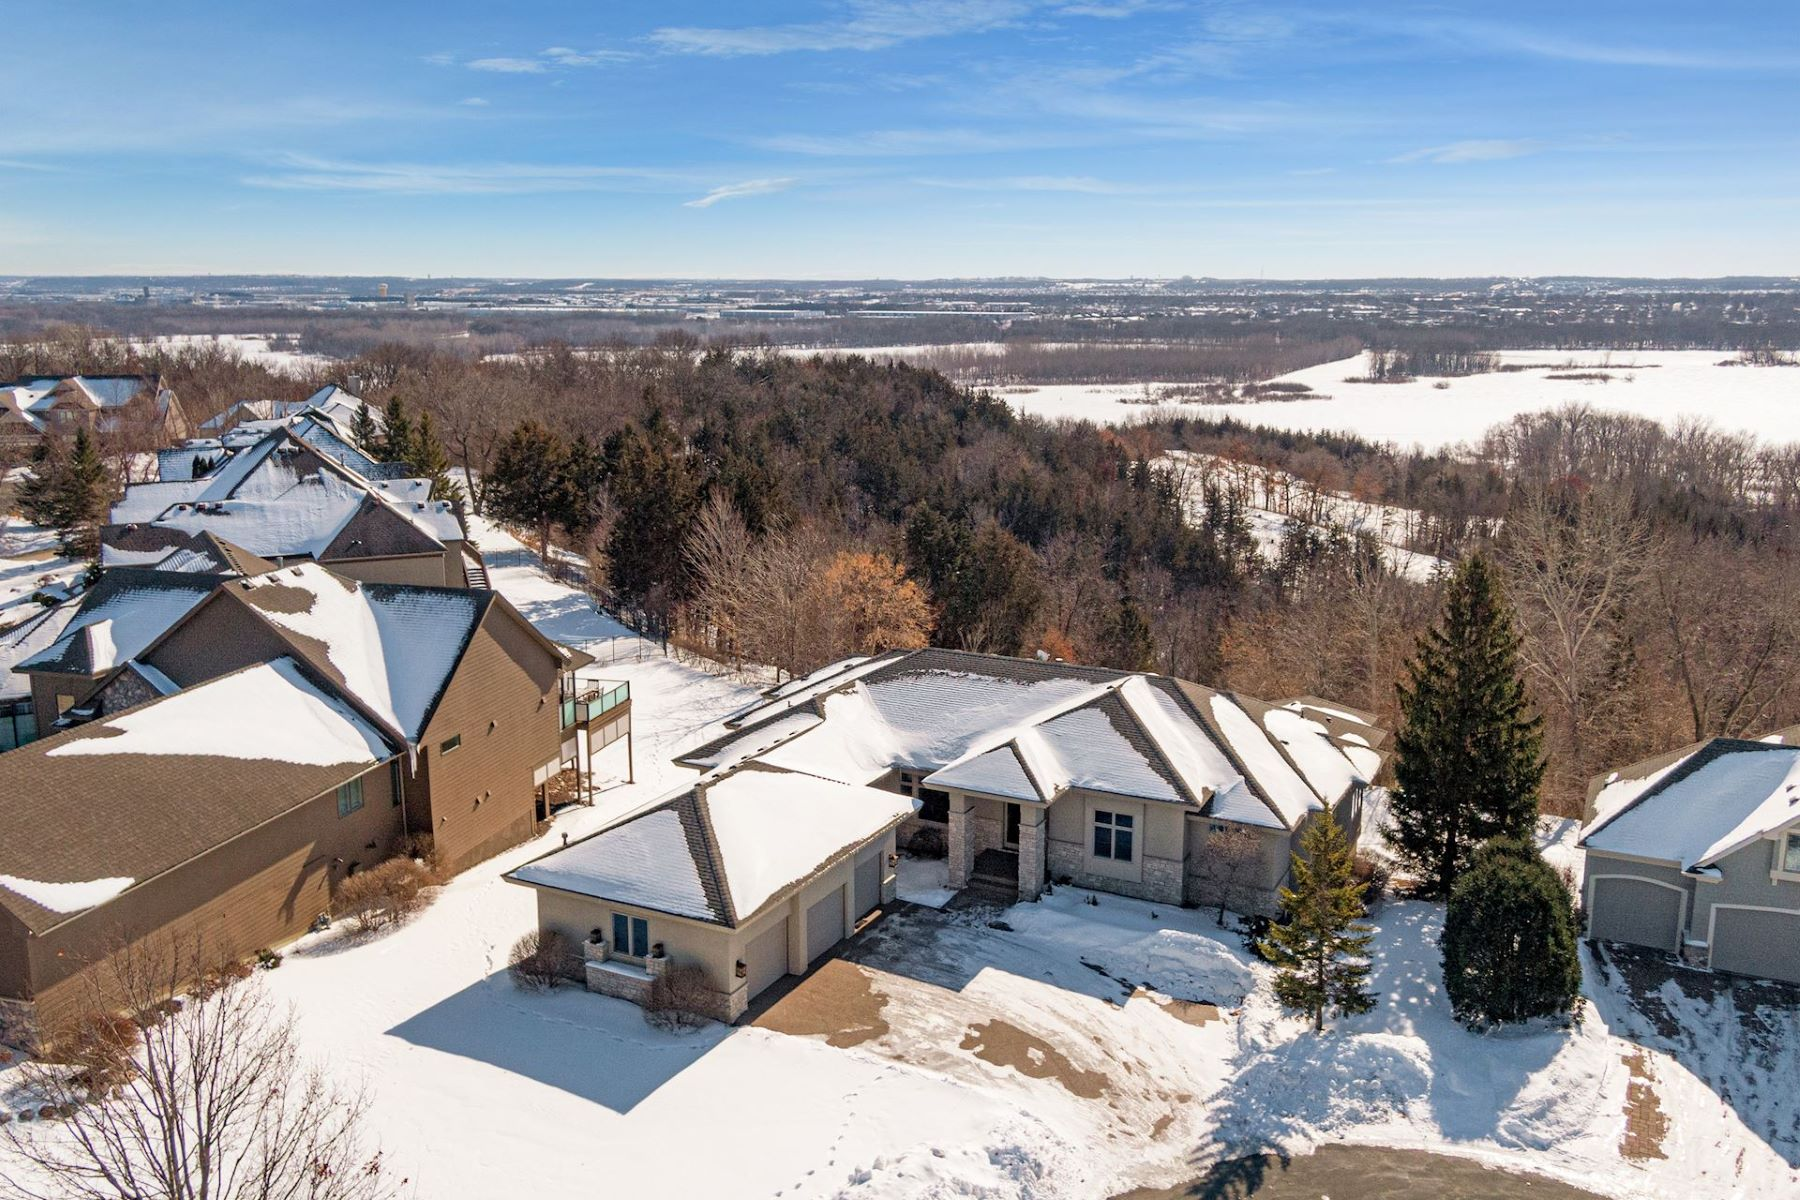 Single Family Homes for Sale at Stunning 3BR Custom Built Rambler Overlooking the Breathtaking MN River Valley 18755 Vogel Farm Trail Eden Prairie, Minnesota 55347 United States